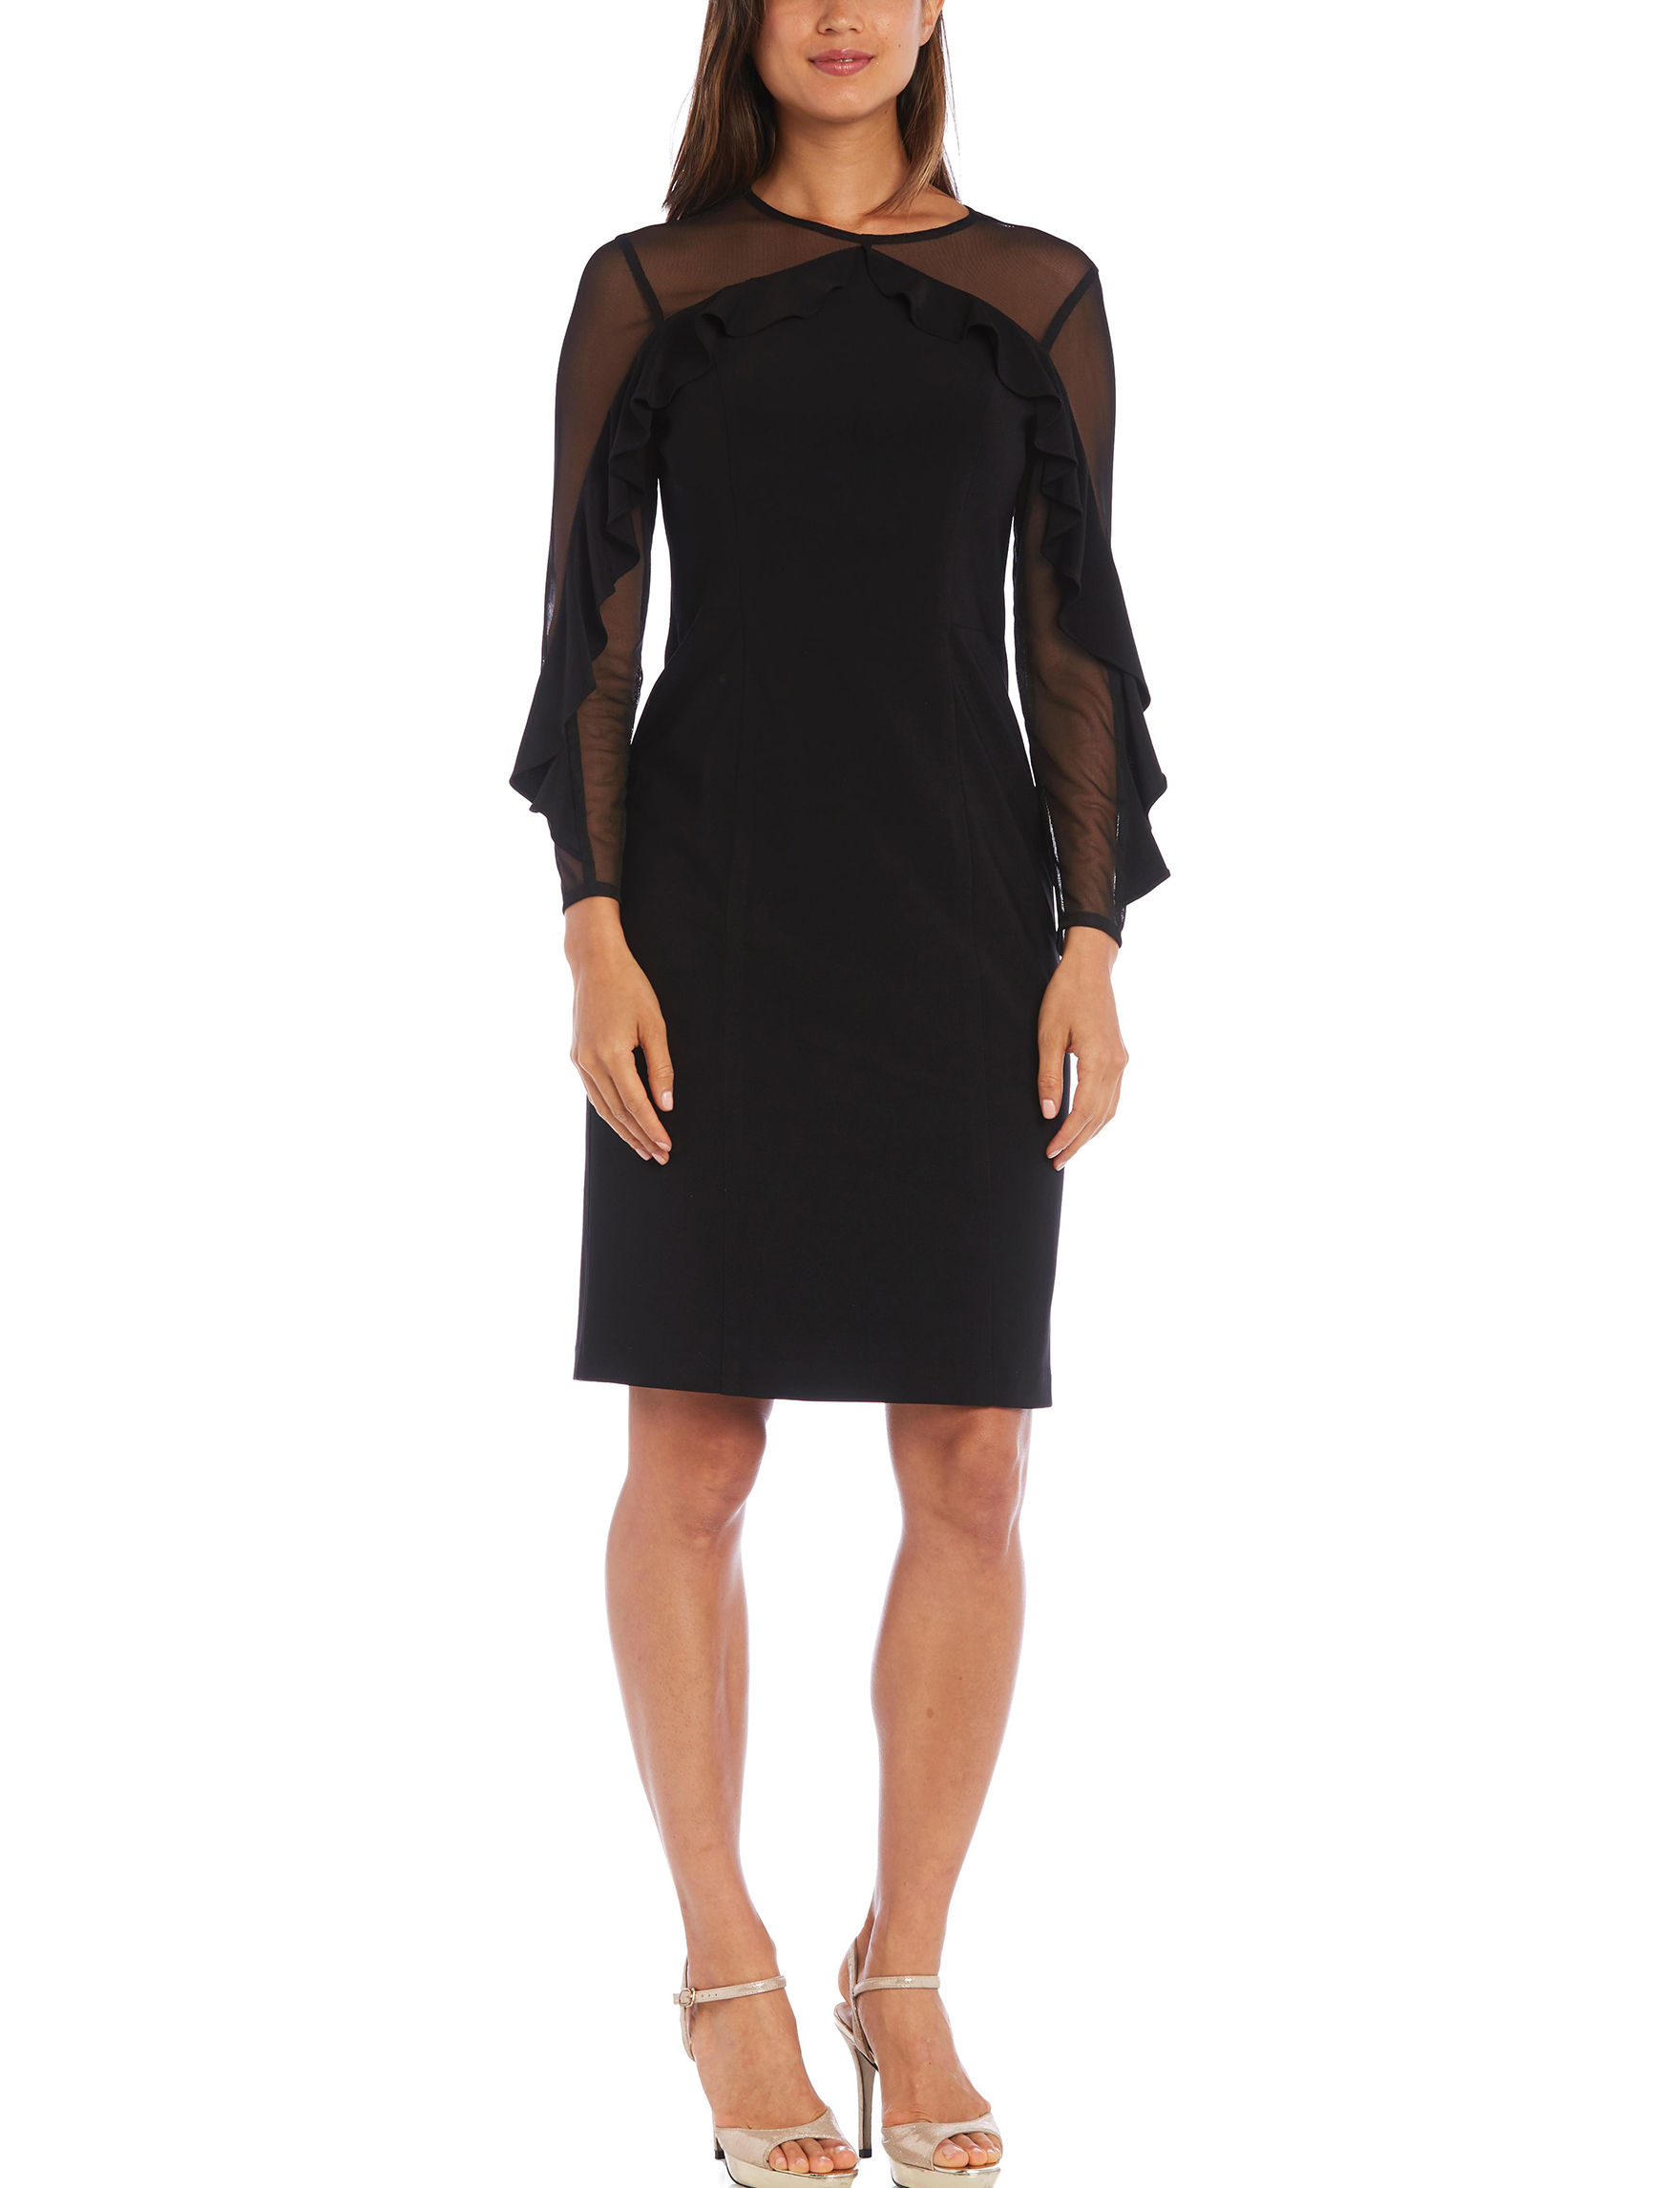 R & M Richards Black Cocktail & Party Evening & Formal Shift Dresses